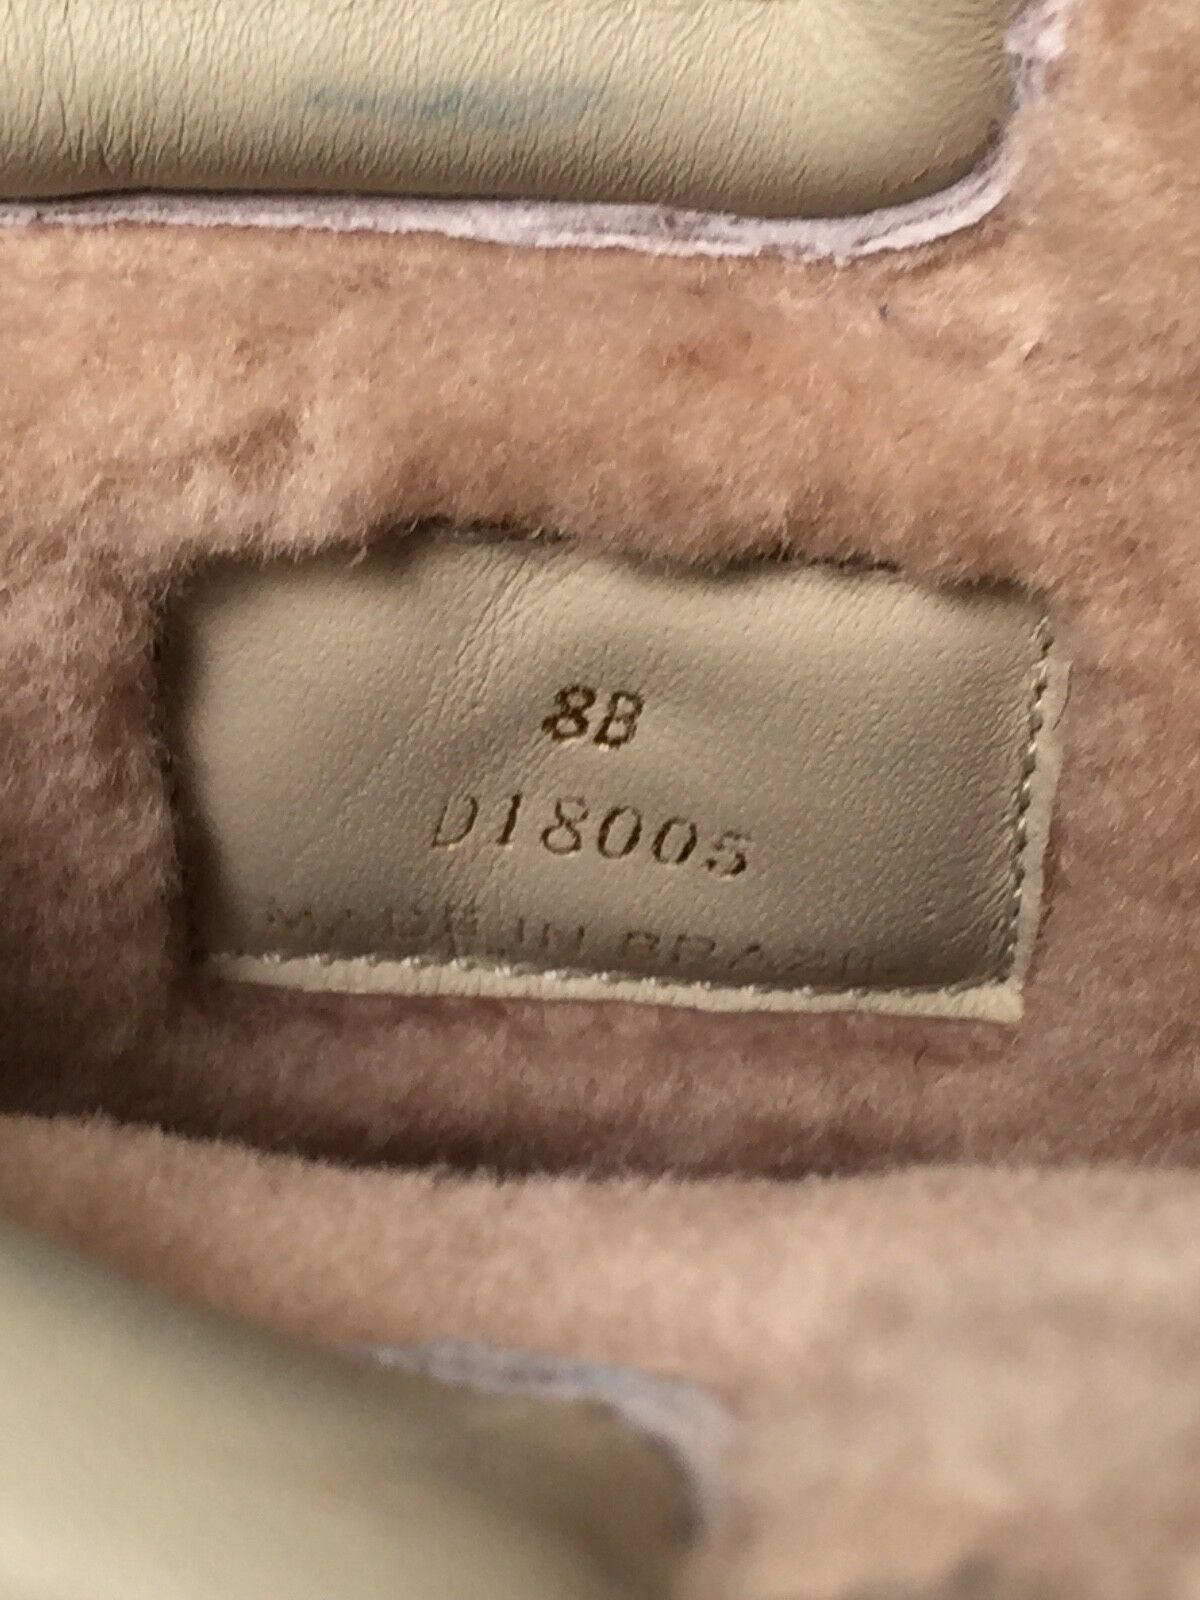 COLE HAAN Women's Size 8 Beige White Pony Hair Hair Hair Shearling Fur Lined Wedge Boots de0d92